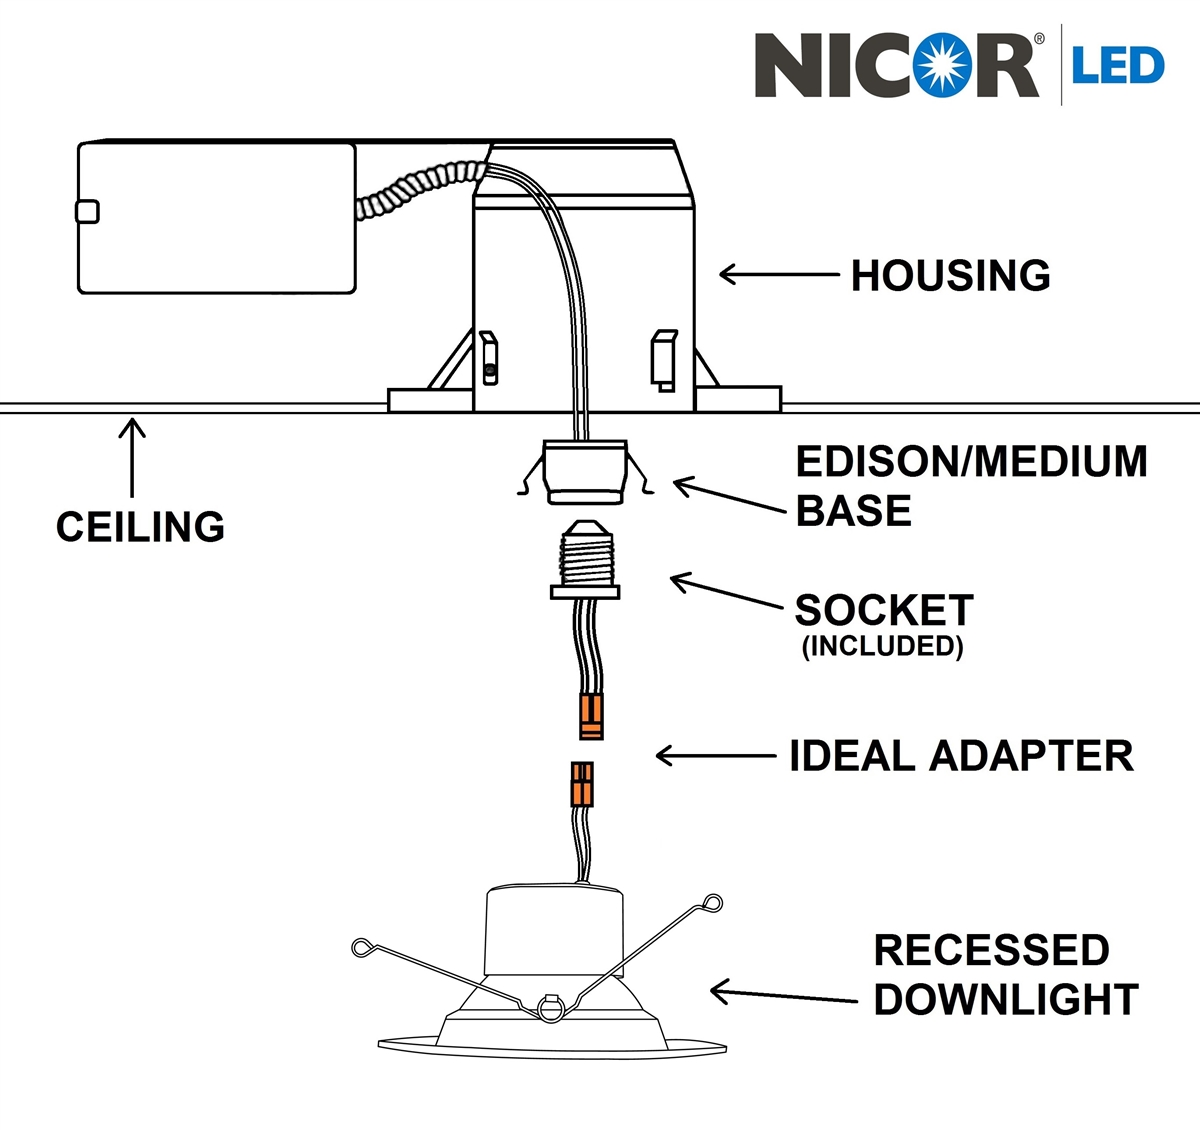 Ccx70rwhdh For Emergency Lighting Wiring Diagrams Diagram 4 Downlights Nicor Exit Sign Completed Diagramsnicor Dcr56 800lm Dimmable Recessed Led Downlight Elevator